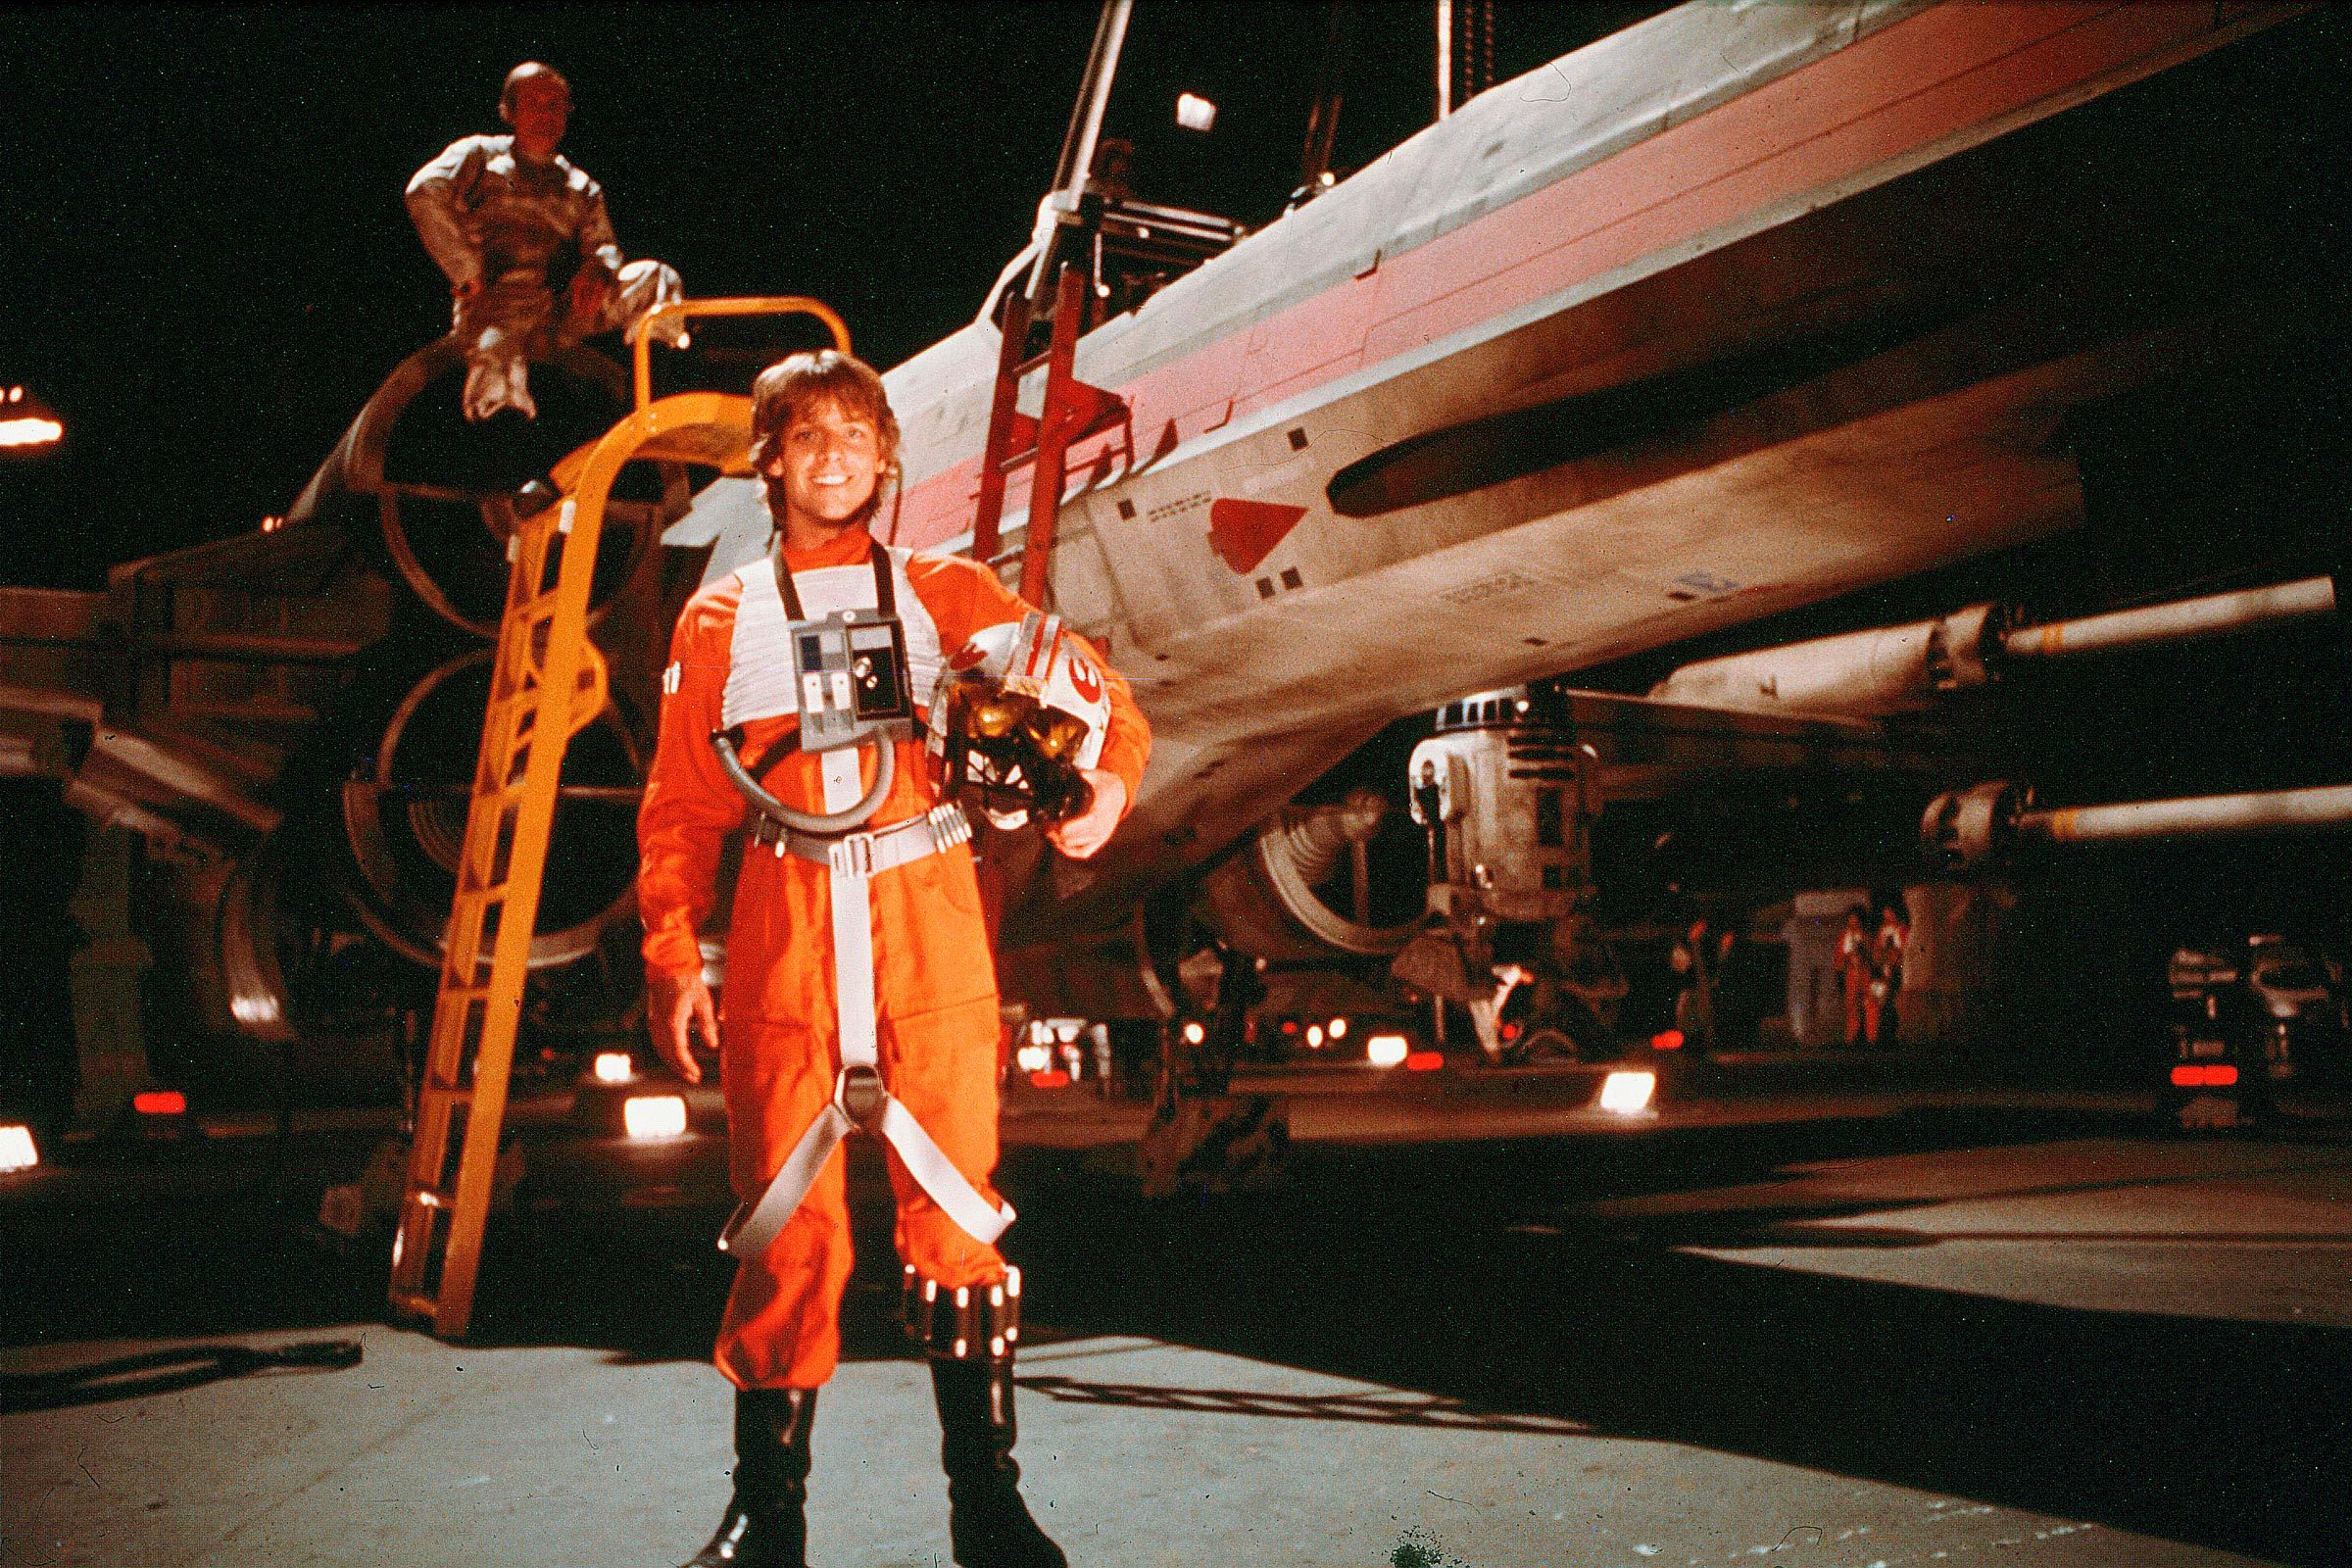 Mark Hamill on the set of Star Wars Episode IV - A New Hope - 1977